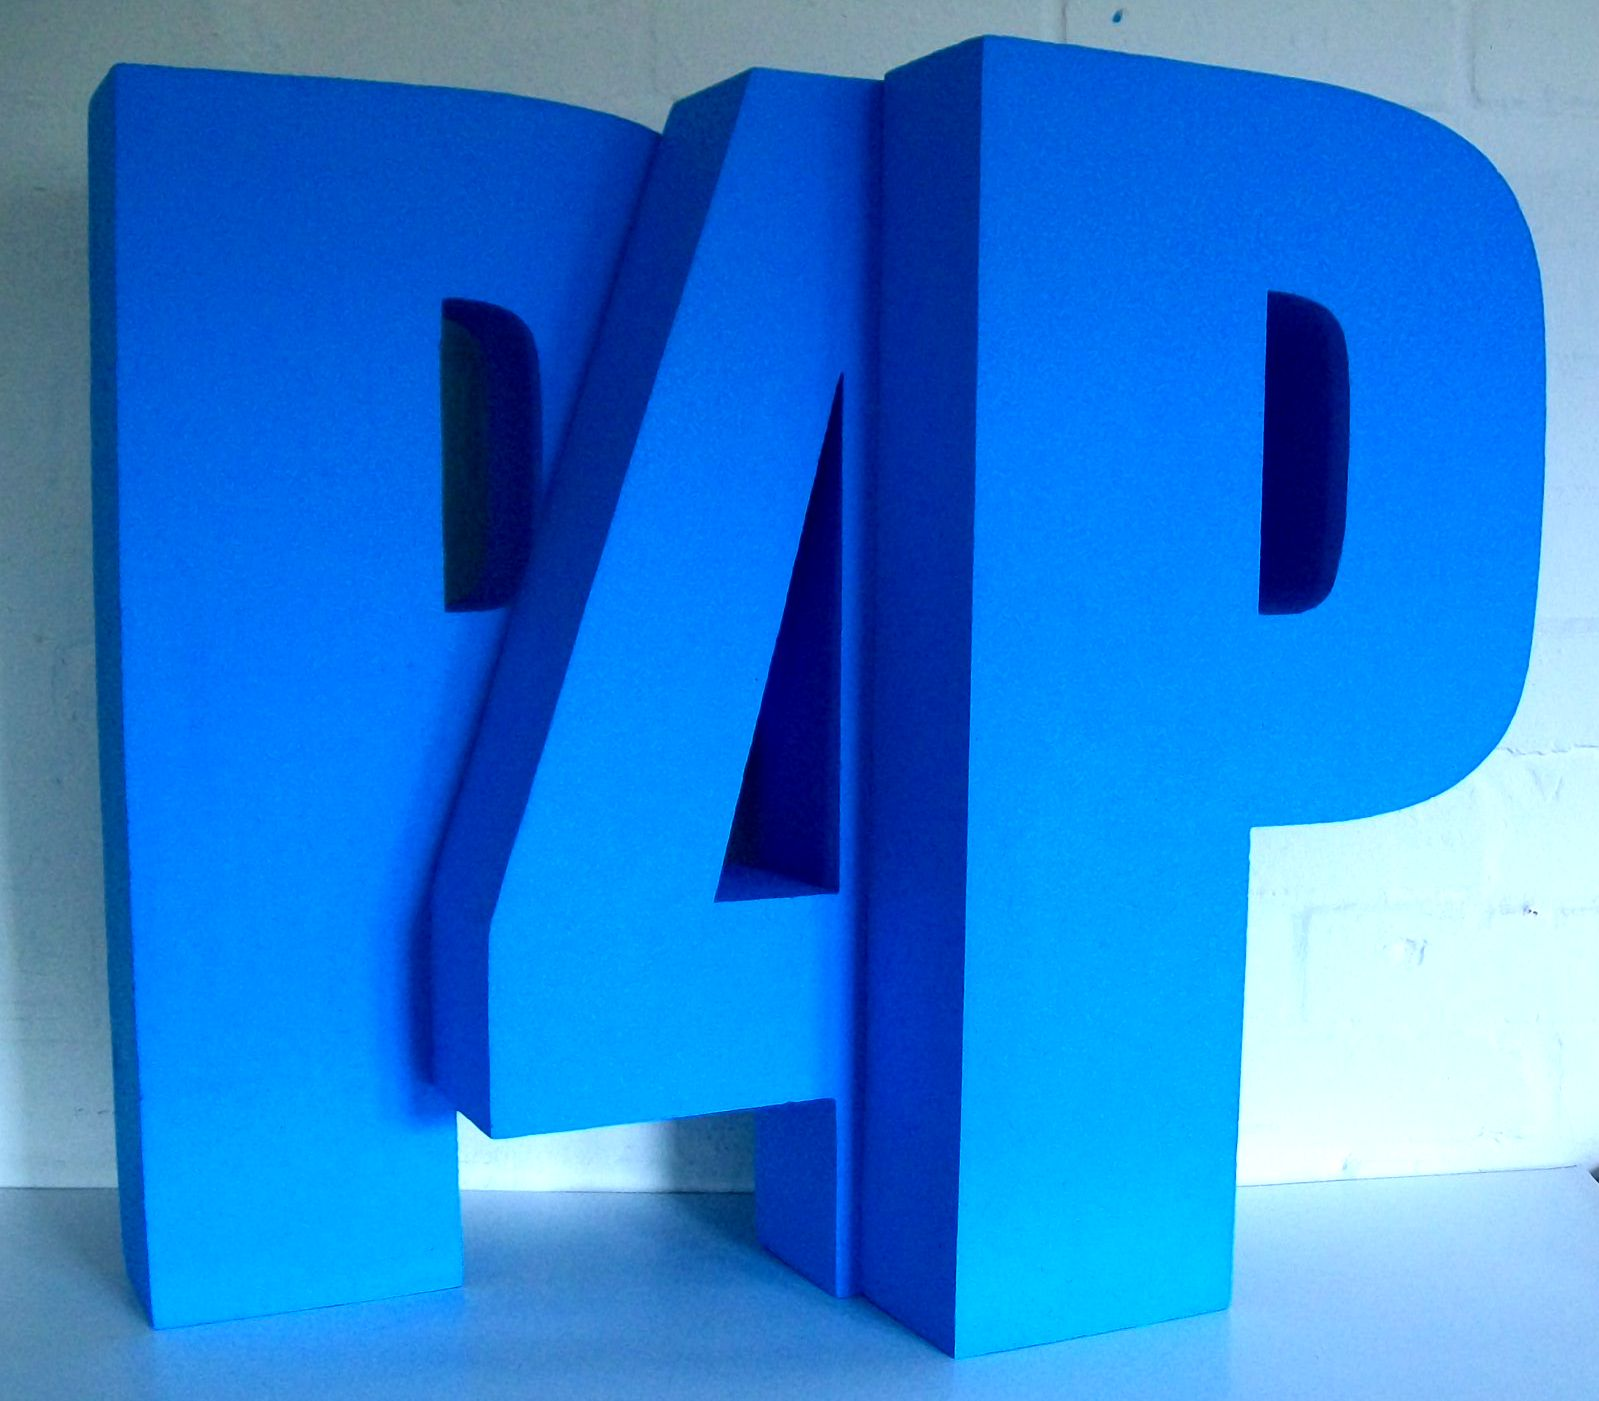 p4p-blue-polystyrene-letters-impact-font